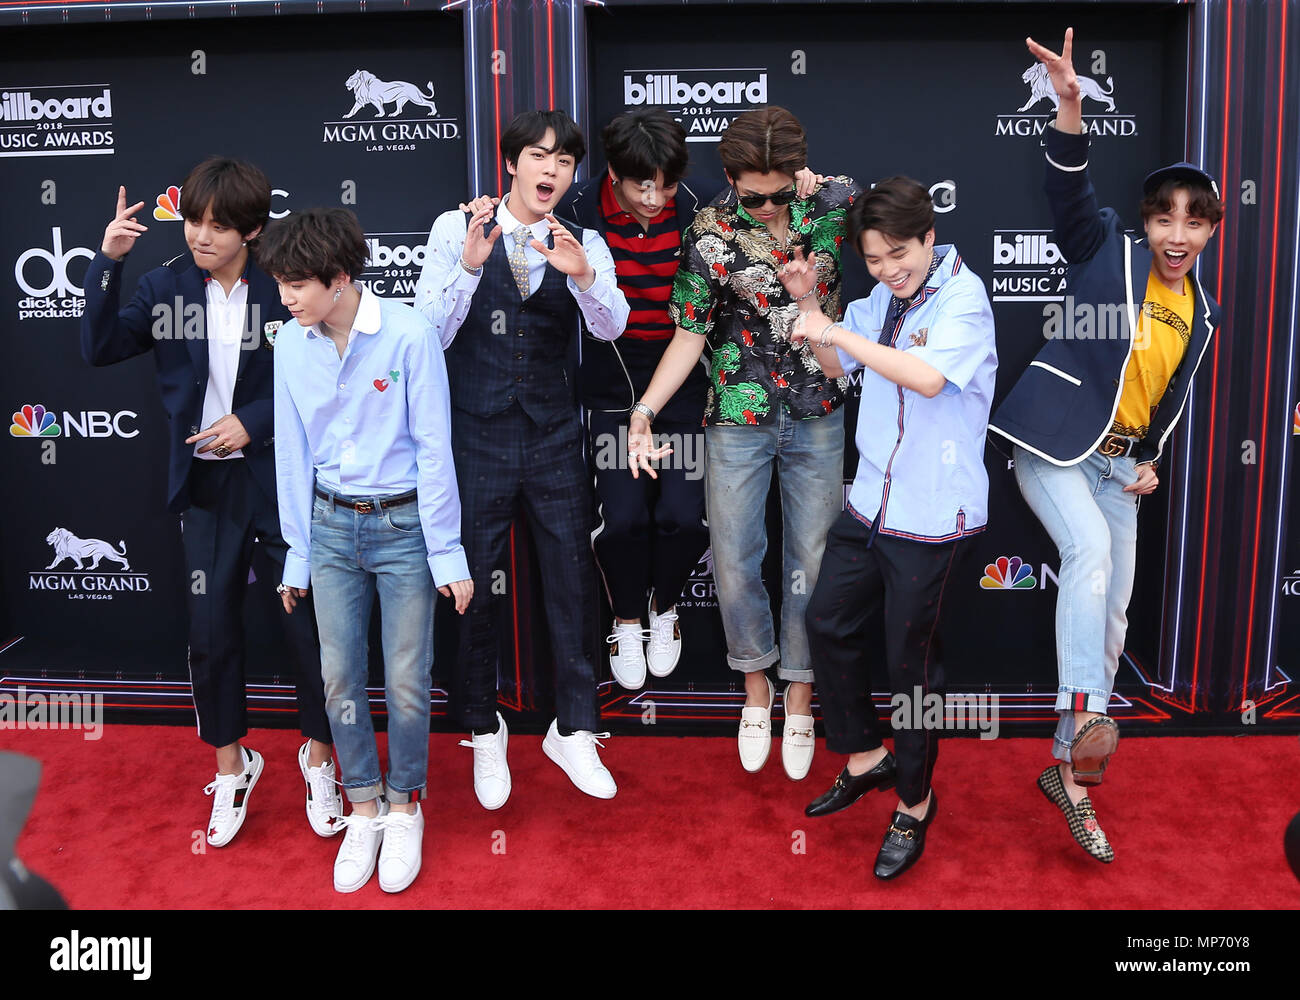 Las Vegas, NV, USA. 20th May, 2018. 20 May 2018 - Las Vegas, NV - BTS. 2018 Billboard Music Awards Red Carpet arrivals at MGM Grand Garden Arena. Photo Credit: MJT/AdMedia Credit: Mjt/AdMedia/ZUMA Wire/Alamy Live News - Stock Image